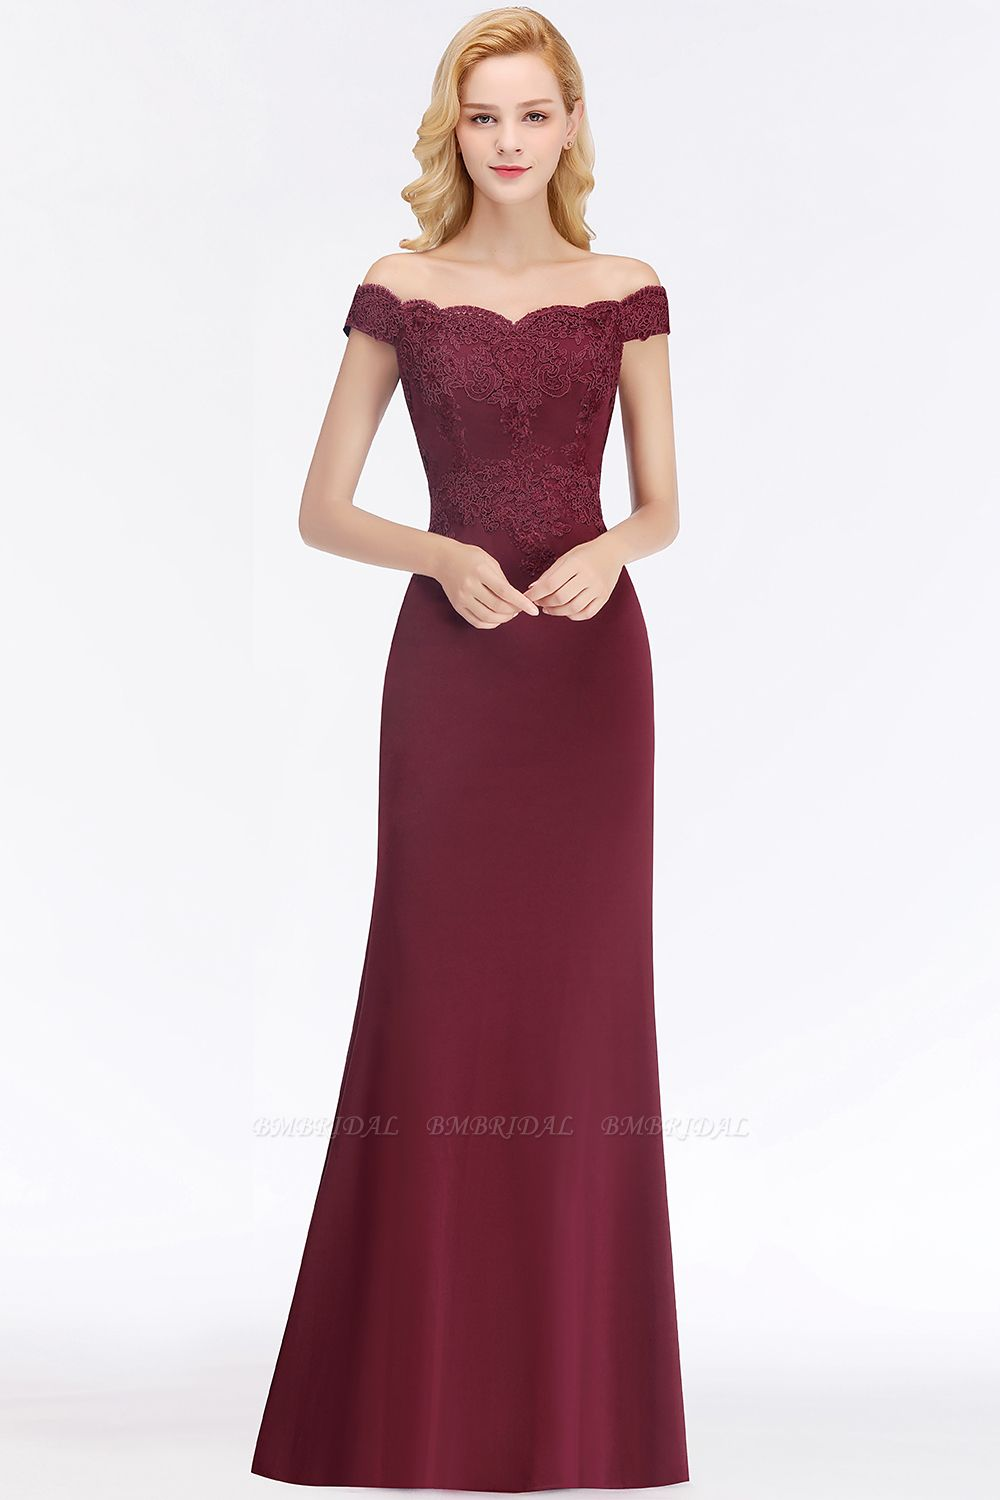 Elegant Mermaid Off-the-Shoulder Burgundy Bridesmaid Dresses with Lace